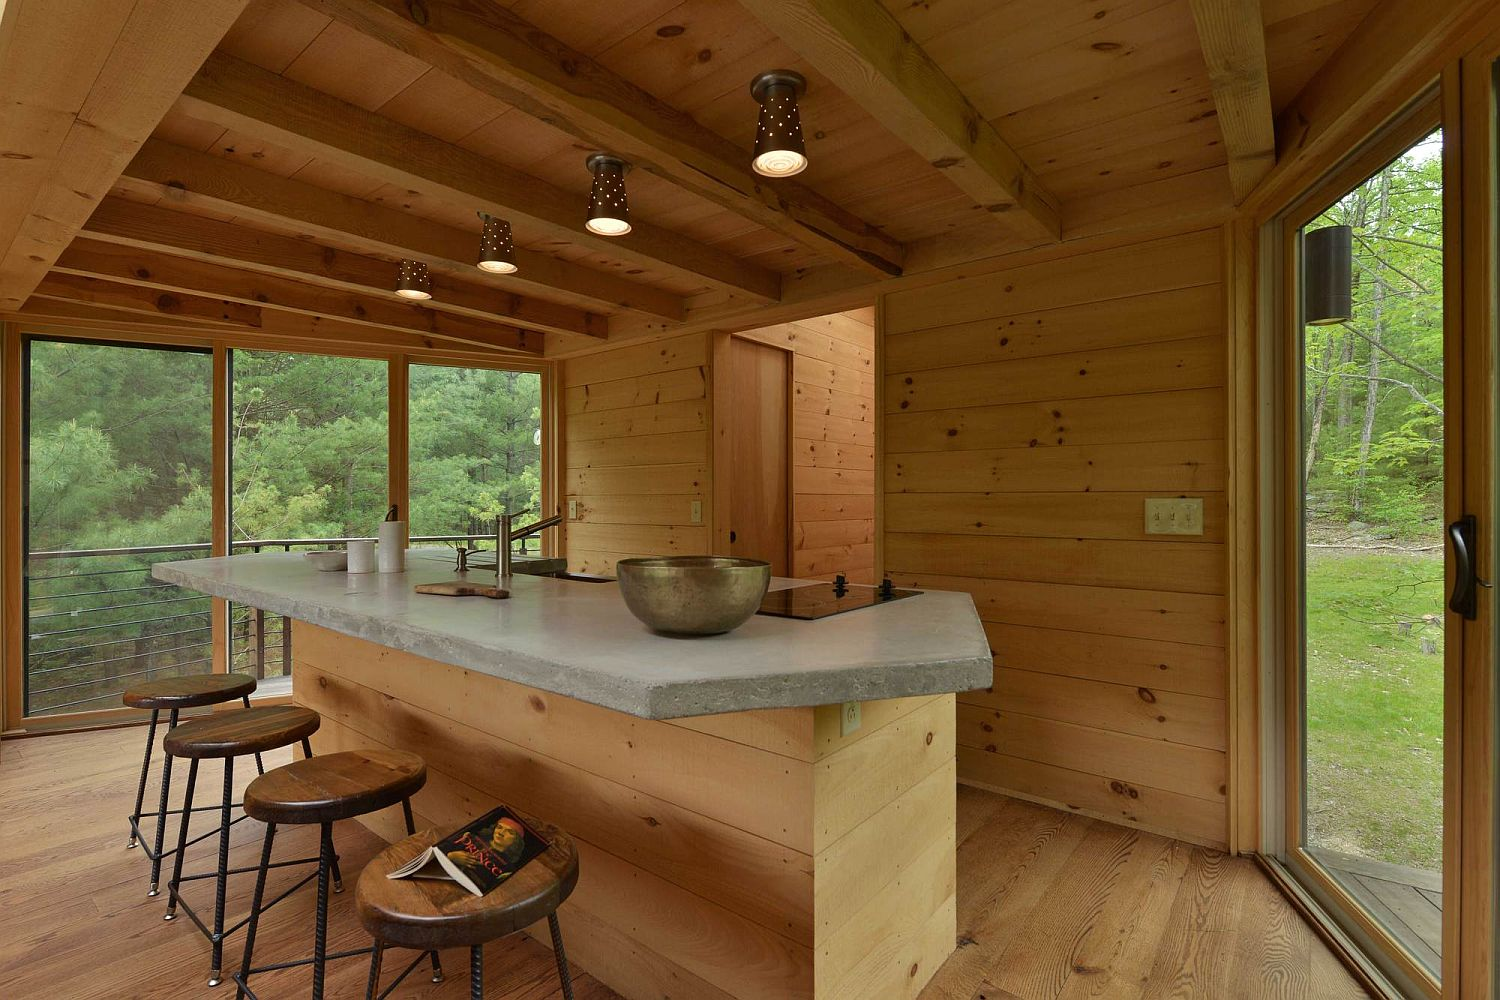 Modest kitchen of the treehouse with breakfast bar